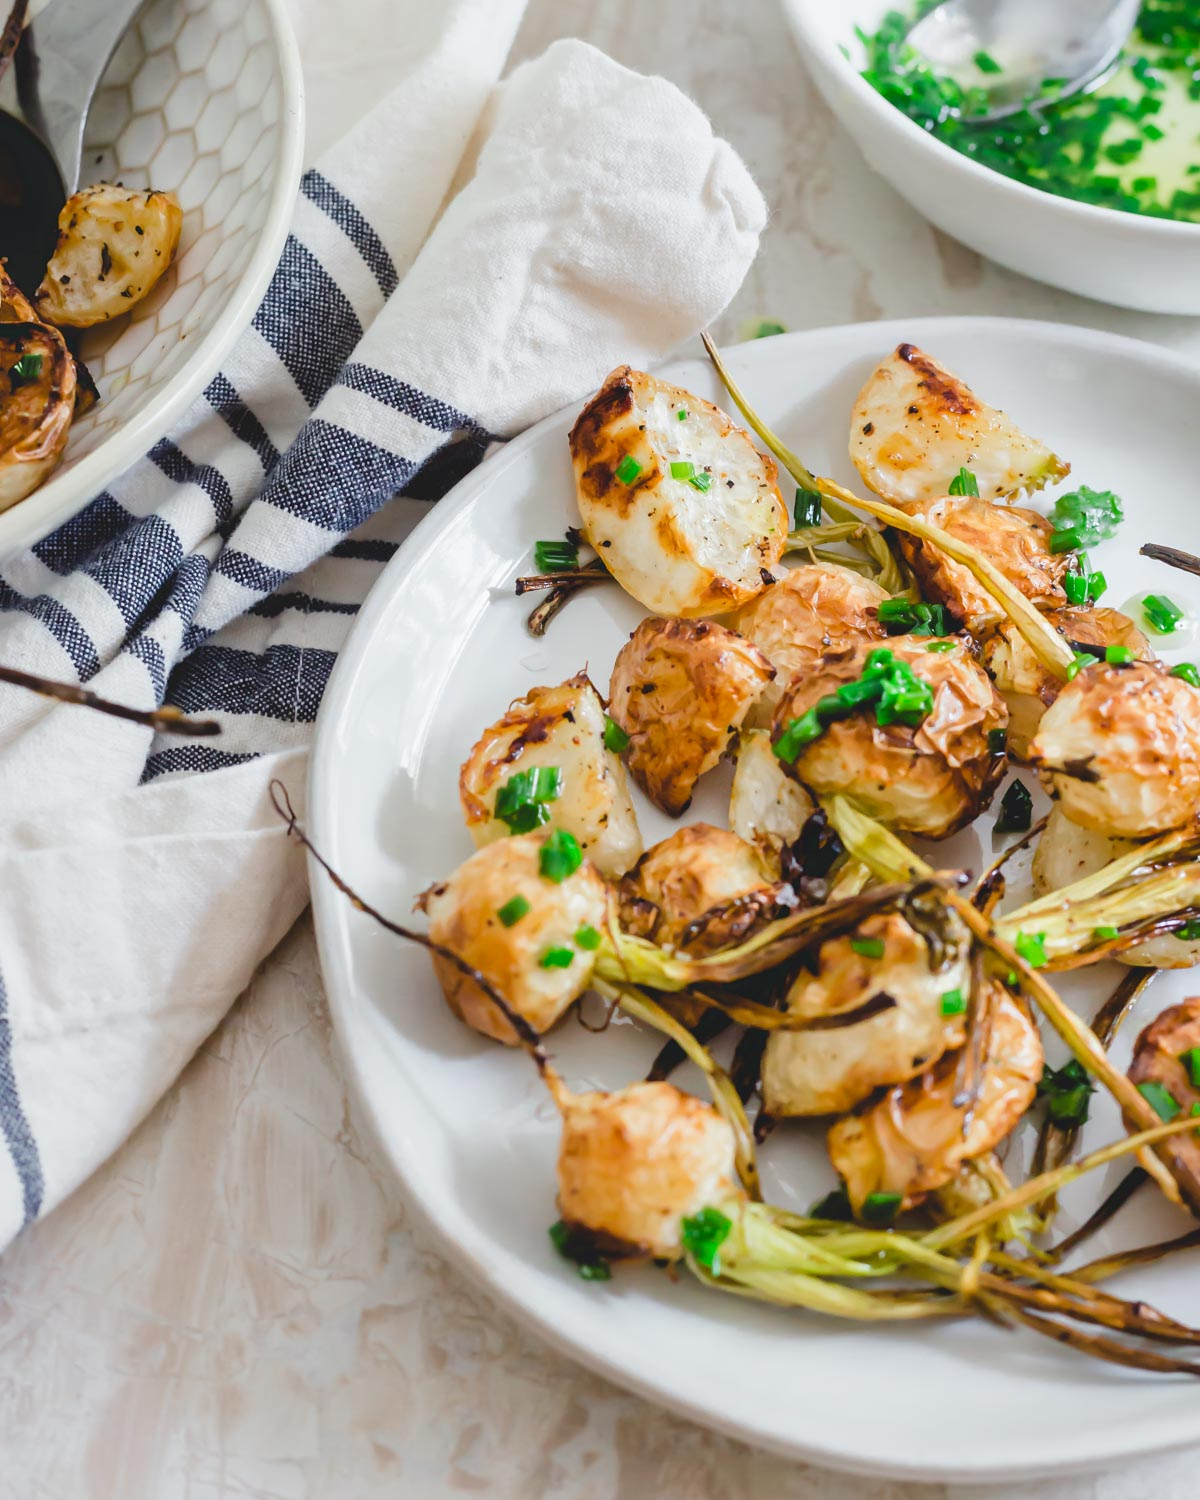 Simple and easy roasted turnip recipe with a chive butter sauce for serving.